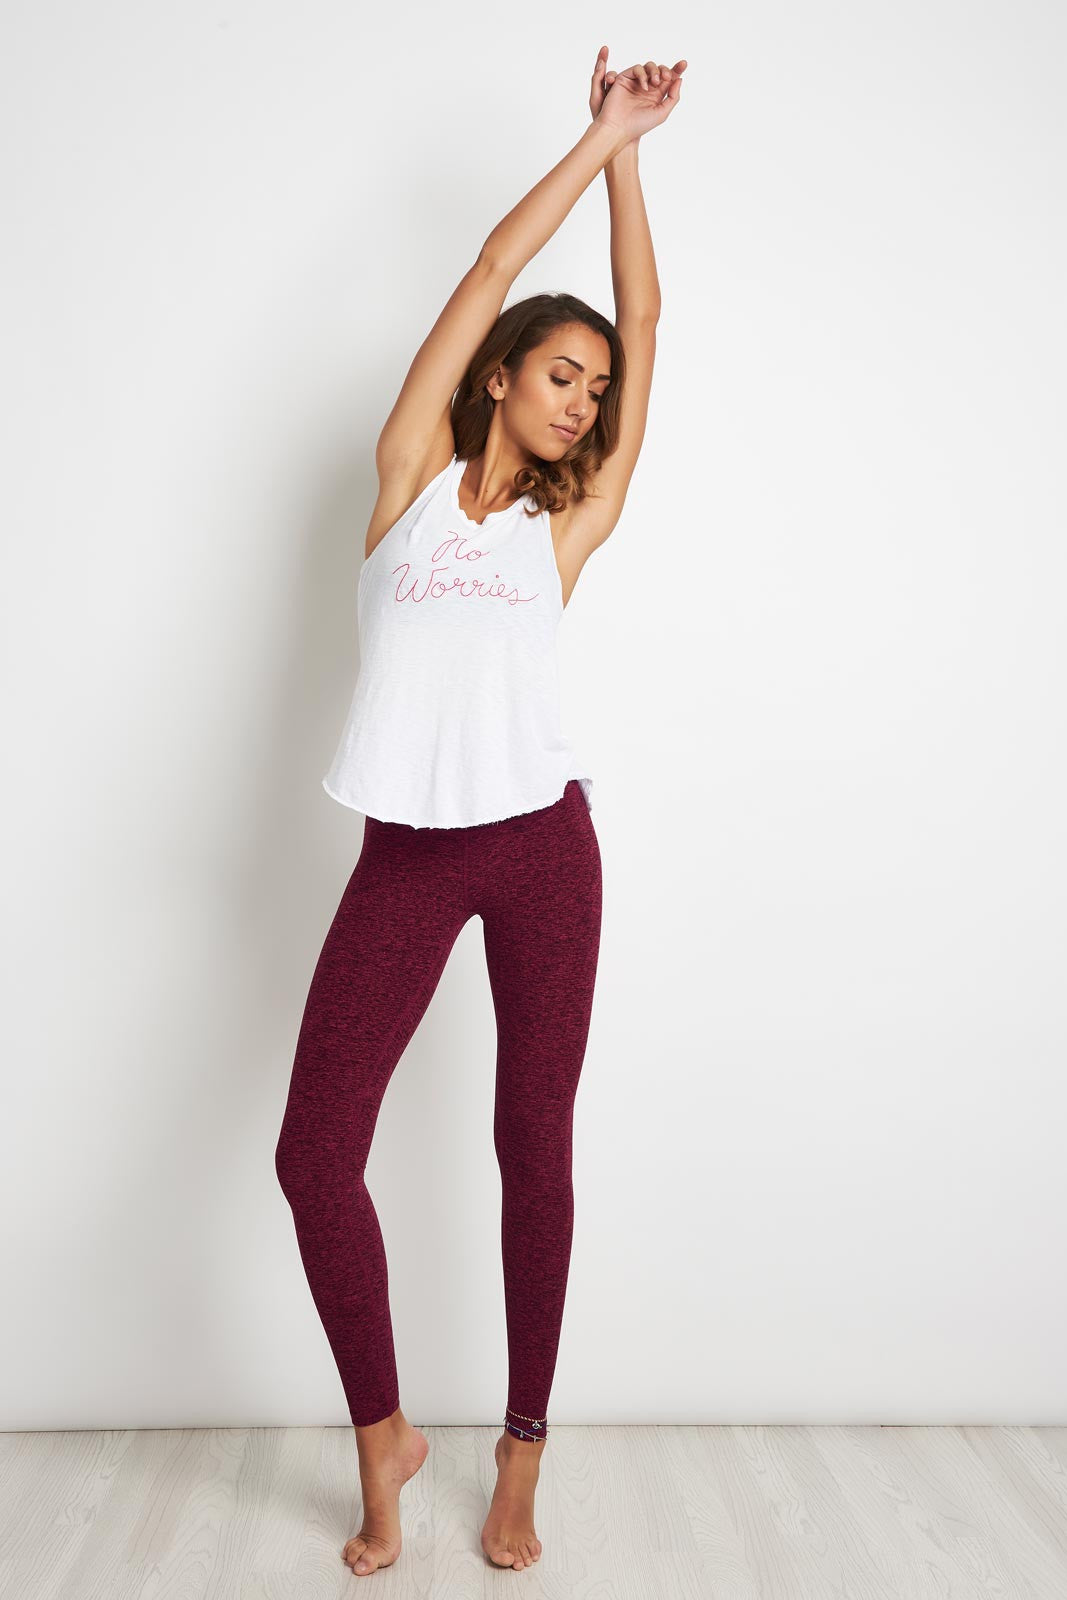 Sundry No Worries Tank Top image 4 - The Sports Edit